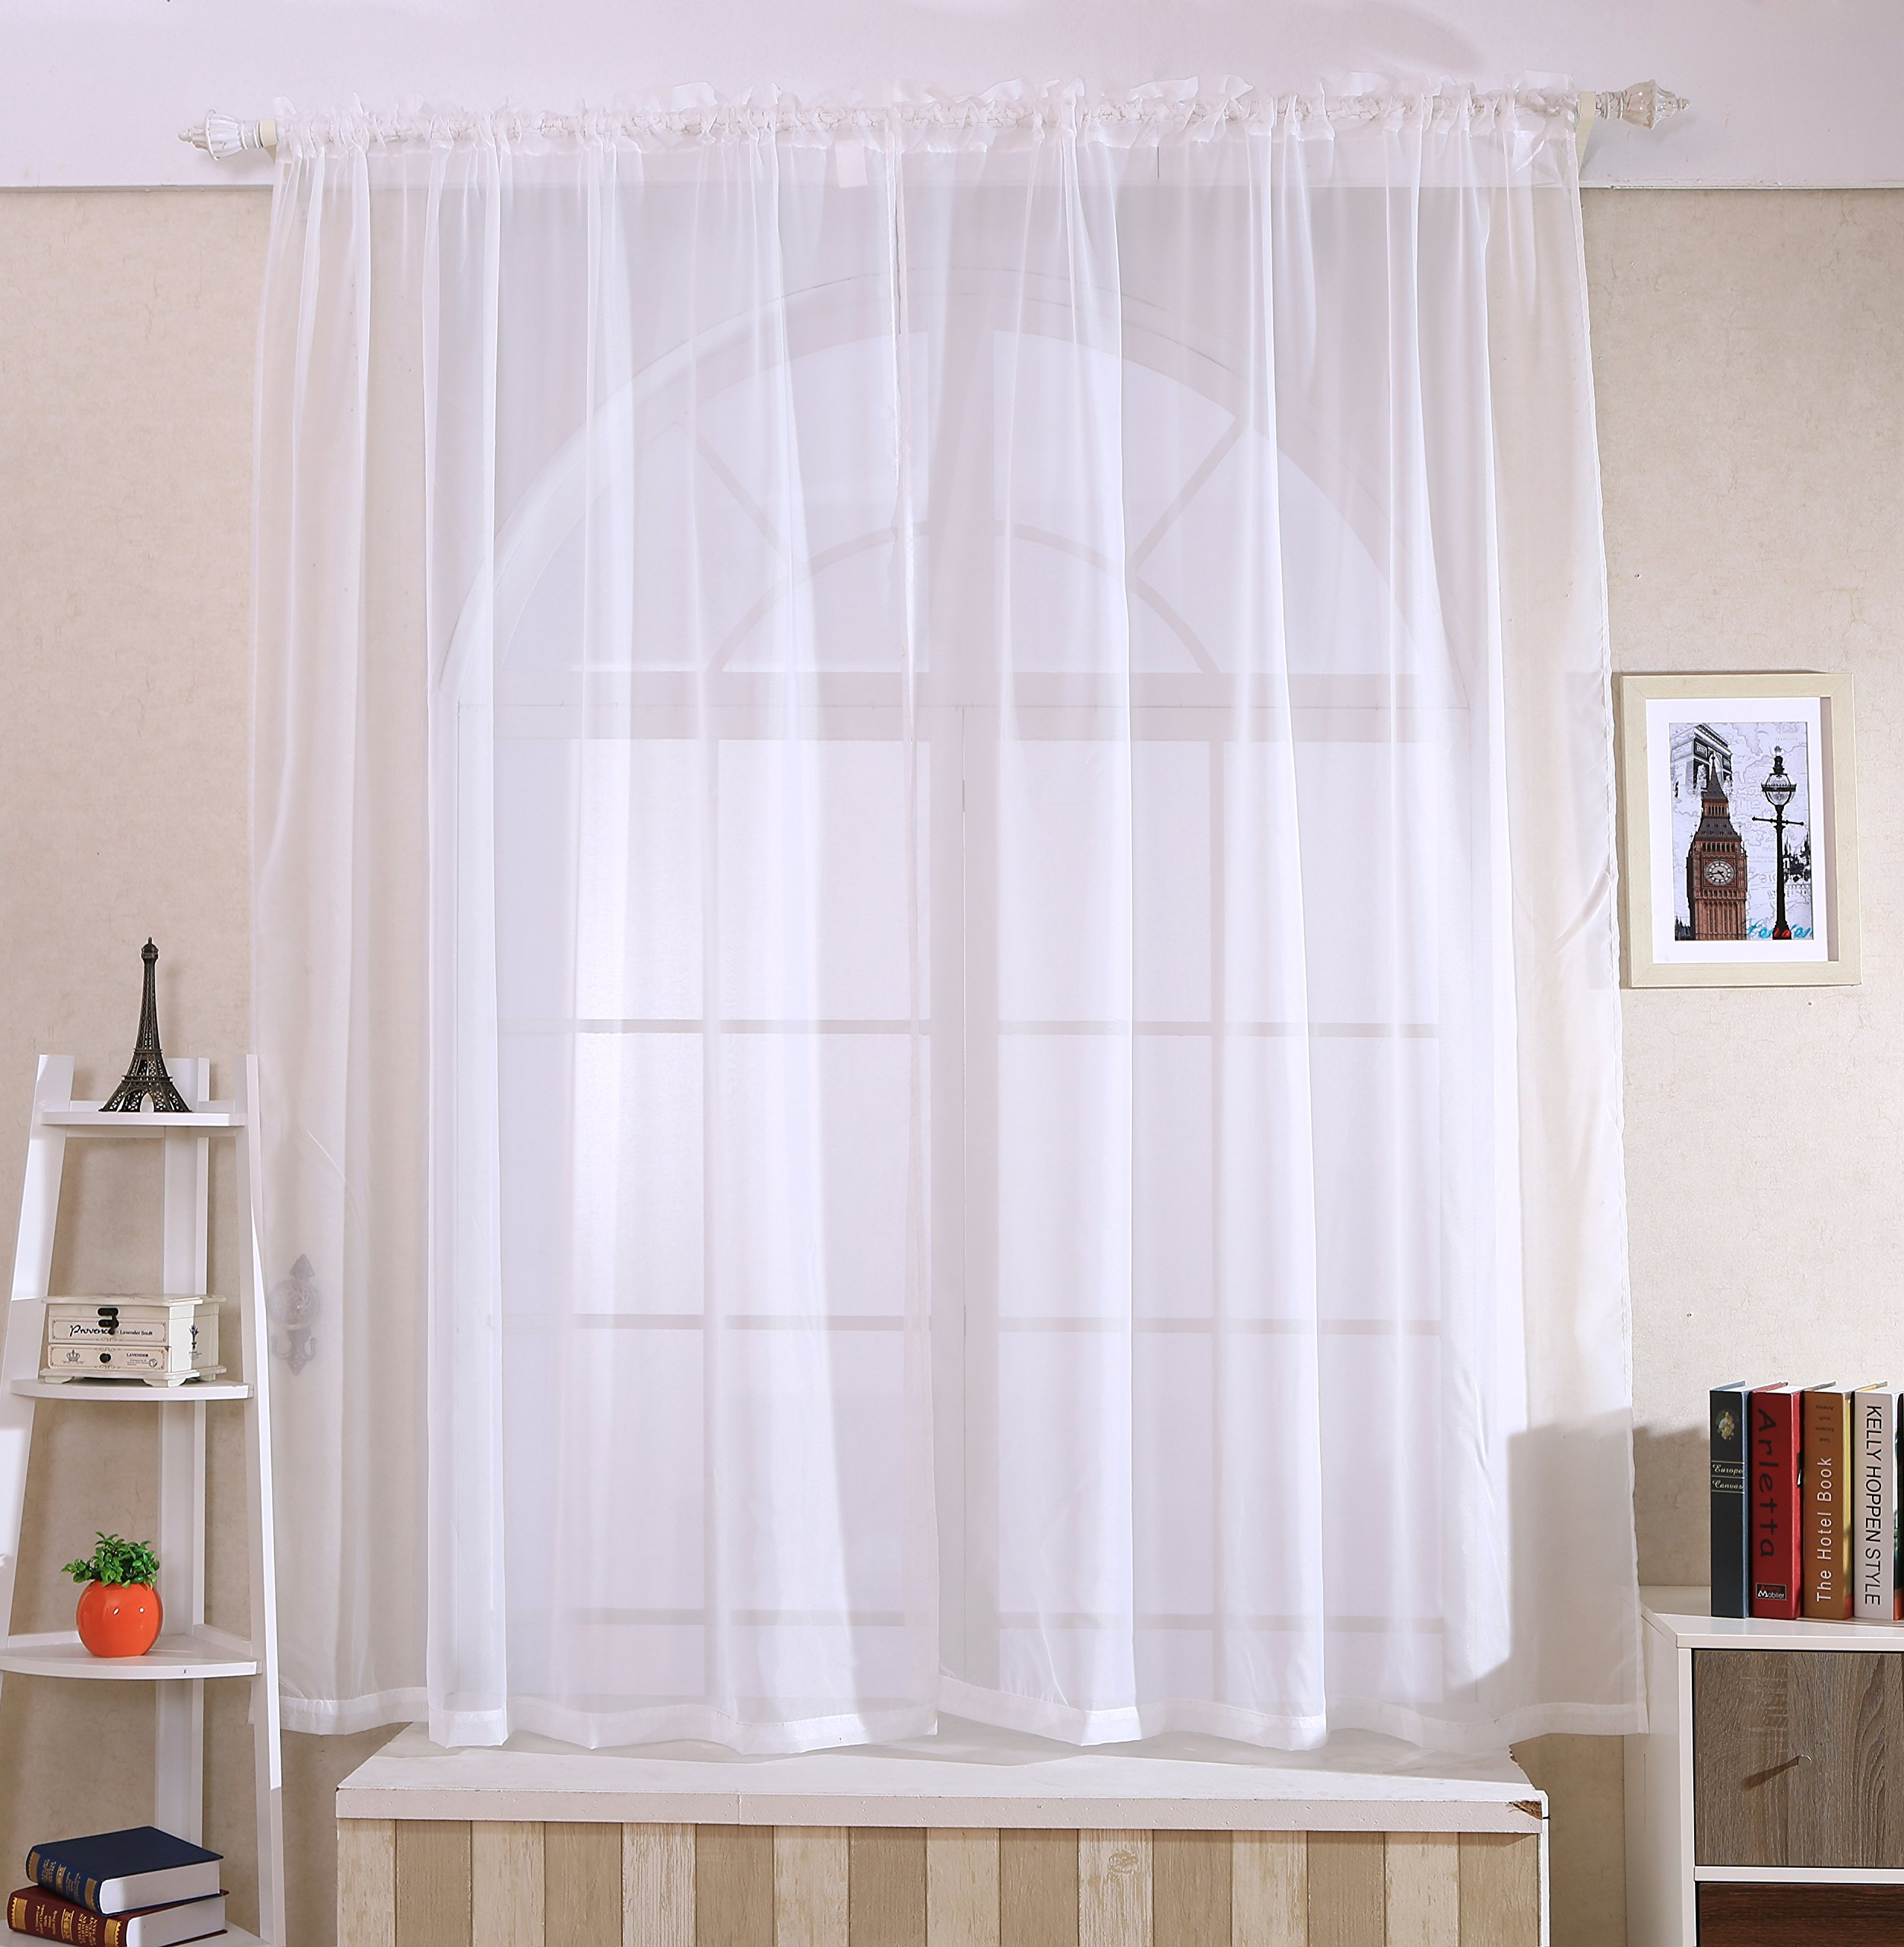 ANTSIR 2 Piece Solid Sheer Window Curtains Drape Panels Treatment Size 60